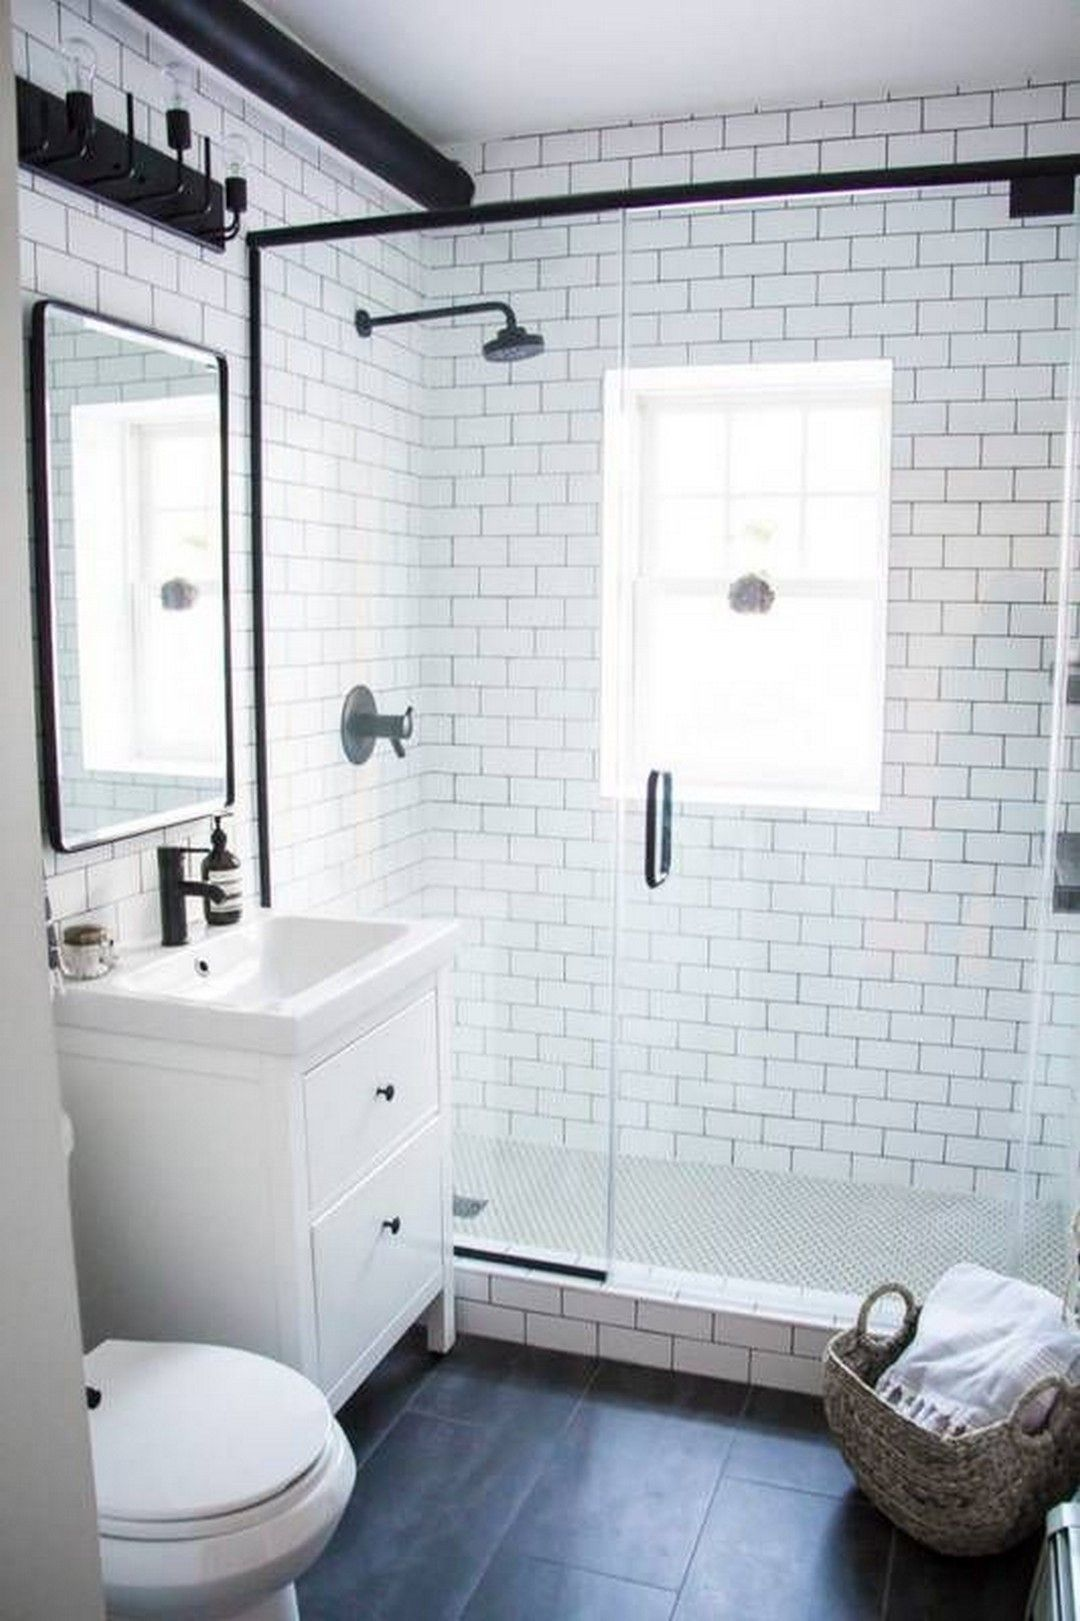 10 Change Your Old Style Bathroom With This Small Master